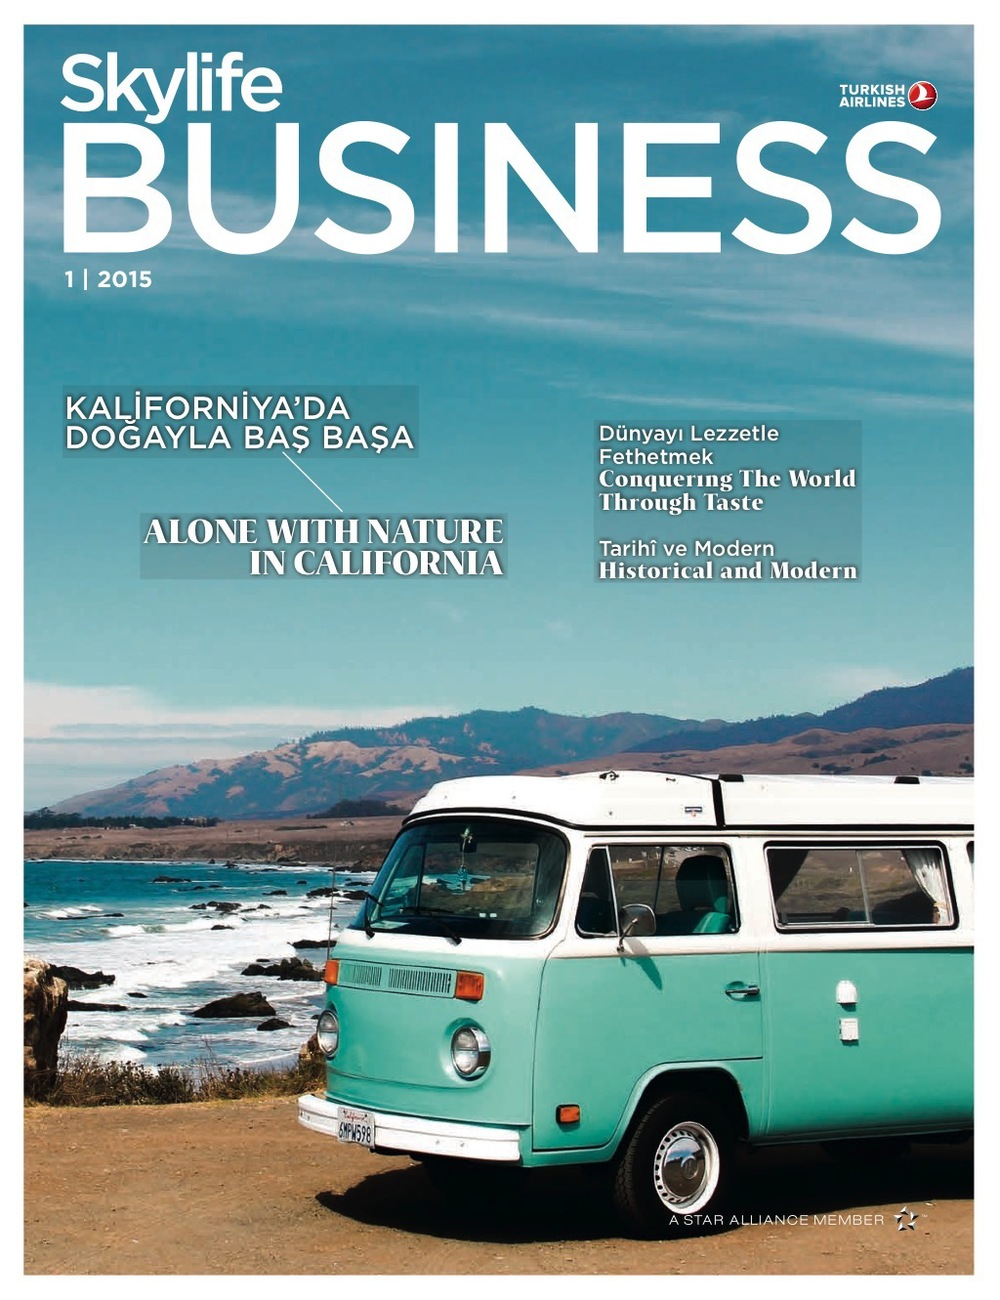 CALIFORNIA NATURE       SKYLIFE BUSINESS    I wrote the cover story for the January 2015 issue of Skylife Business: a guide to some of the most awesome spots along the California coast, with photos by Erin Kunkel.